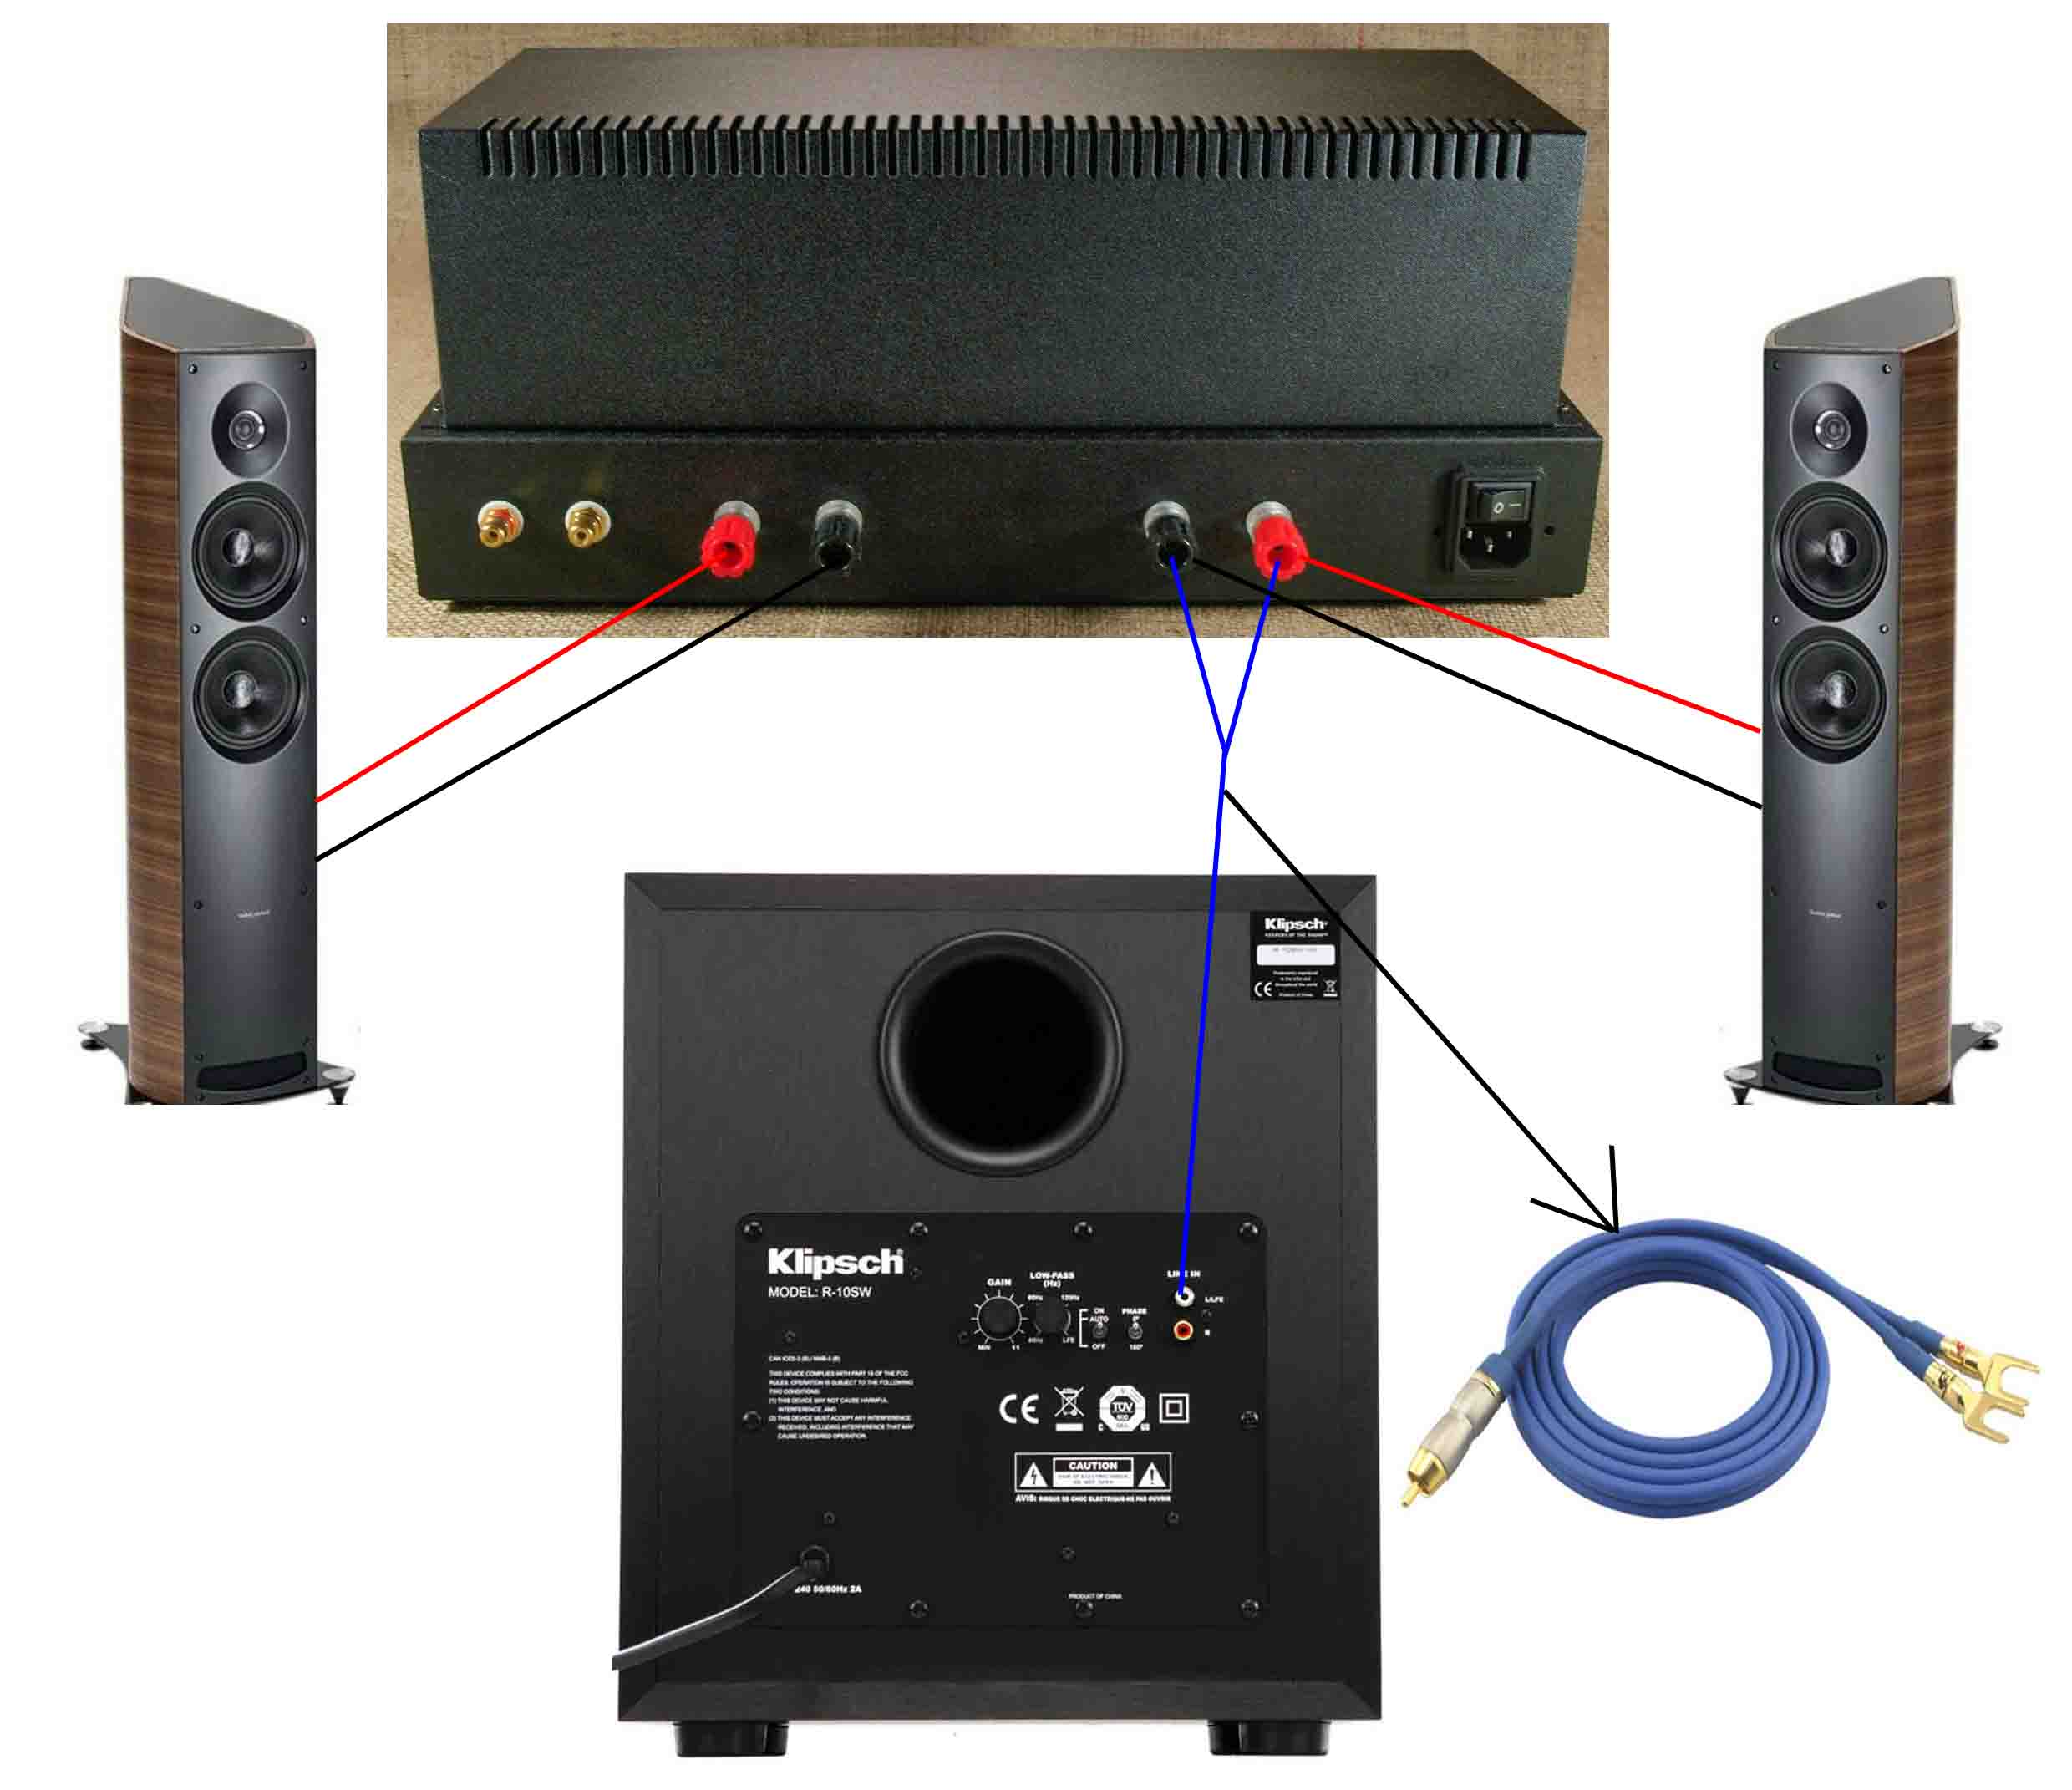 Klipsch Subwoofer Wiring Diagram Stereo To Subwoofer Amp Connection Subwoofers The